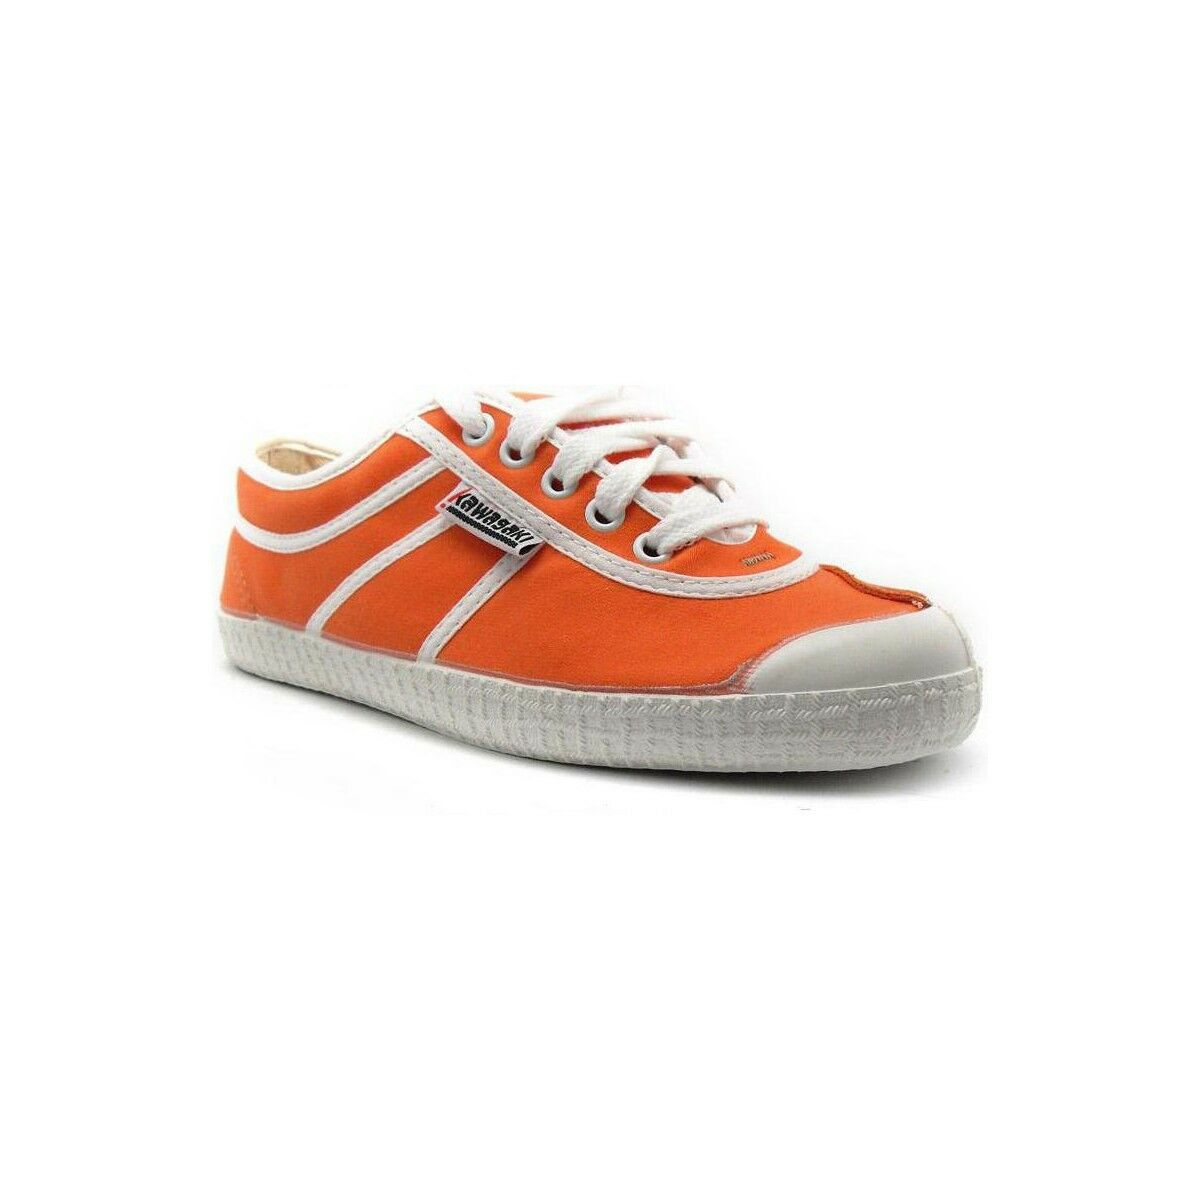 Authentic Sneaker KAWASAKI BASIC orange Size 38  (EU)